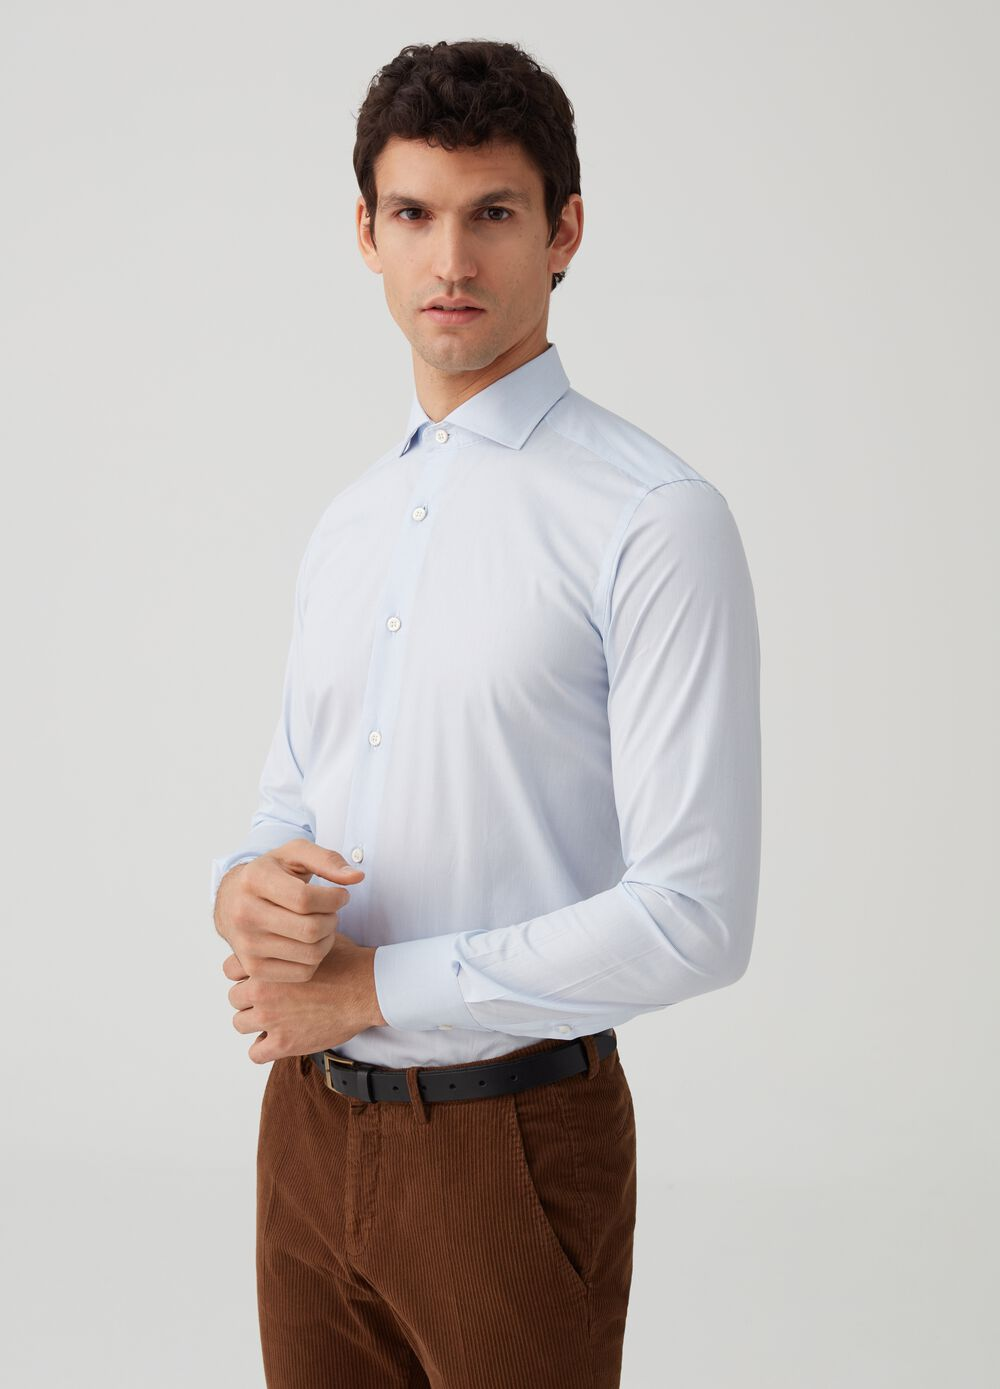 Rumford 100% cotton shirt with striped pattern